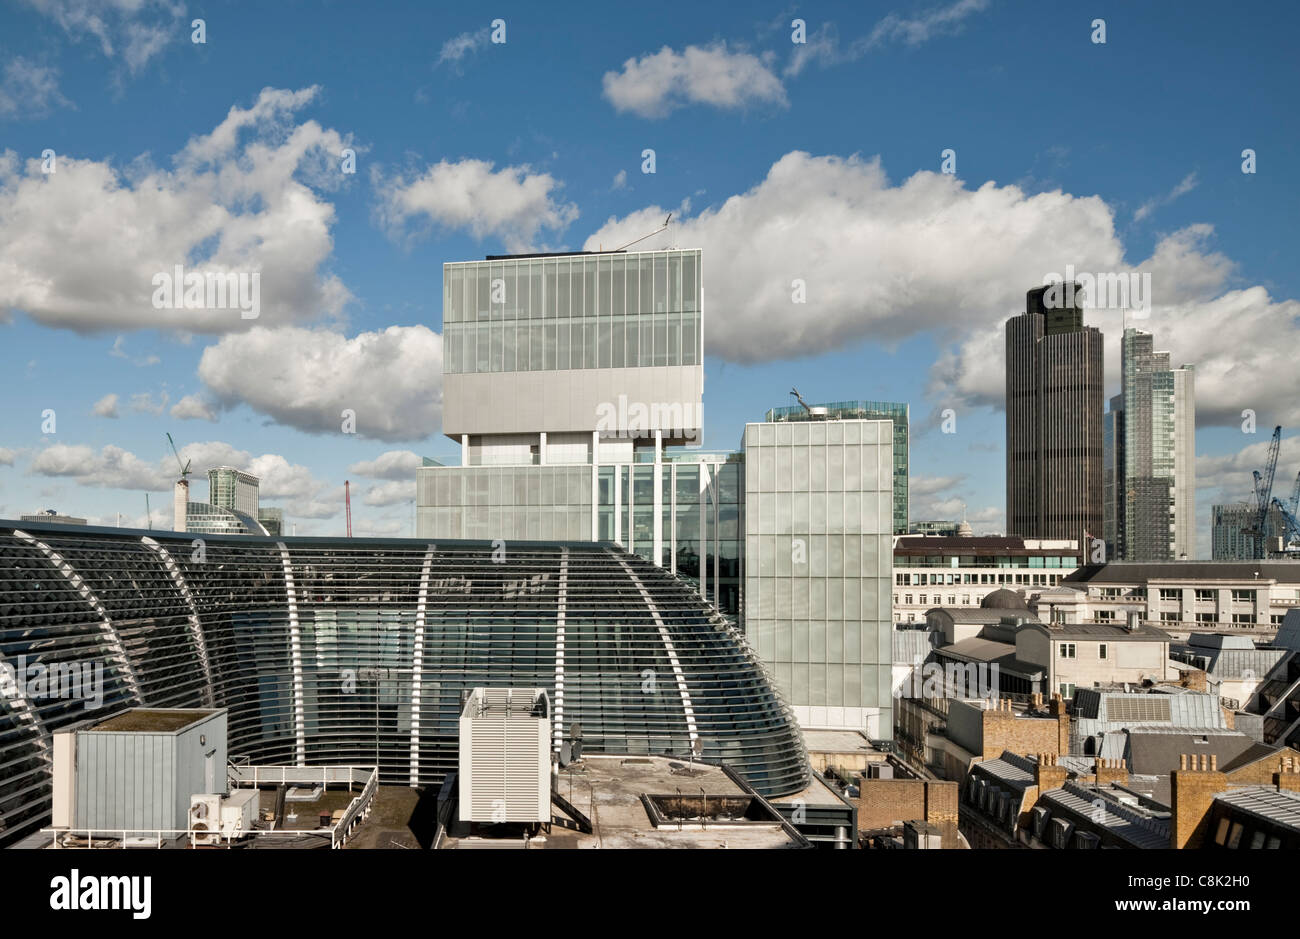 London skyline with Rothchild's offices designed by architect Rem Koolhaas - Stock Image